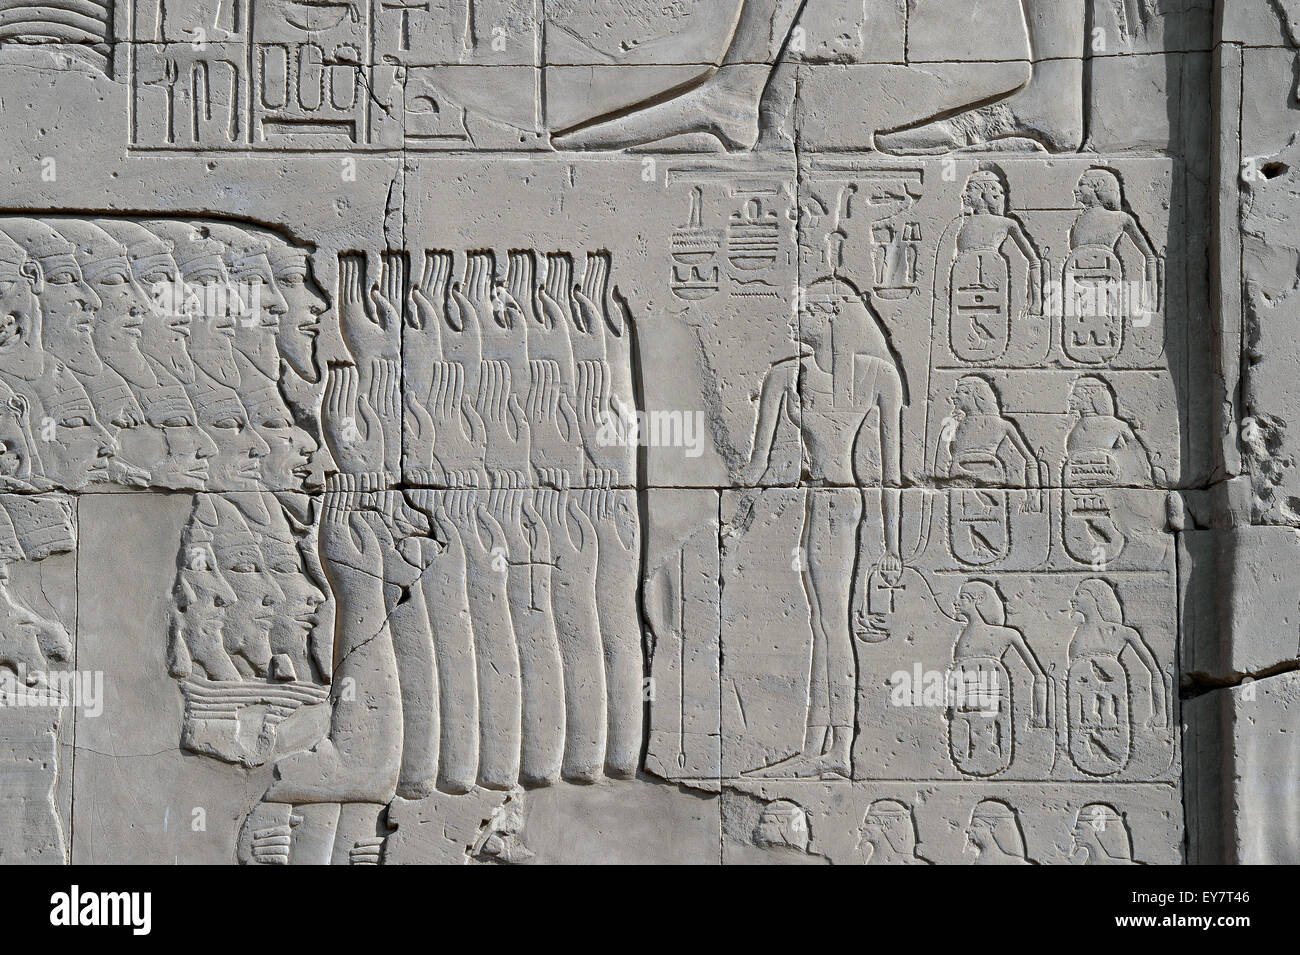 Karnak, Luxor, Egypt. Temple of Karnak sacred to god Amon: the won enemies cities by Tuthmosis III - Stock Image